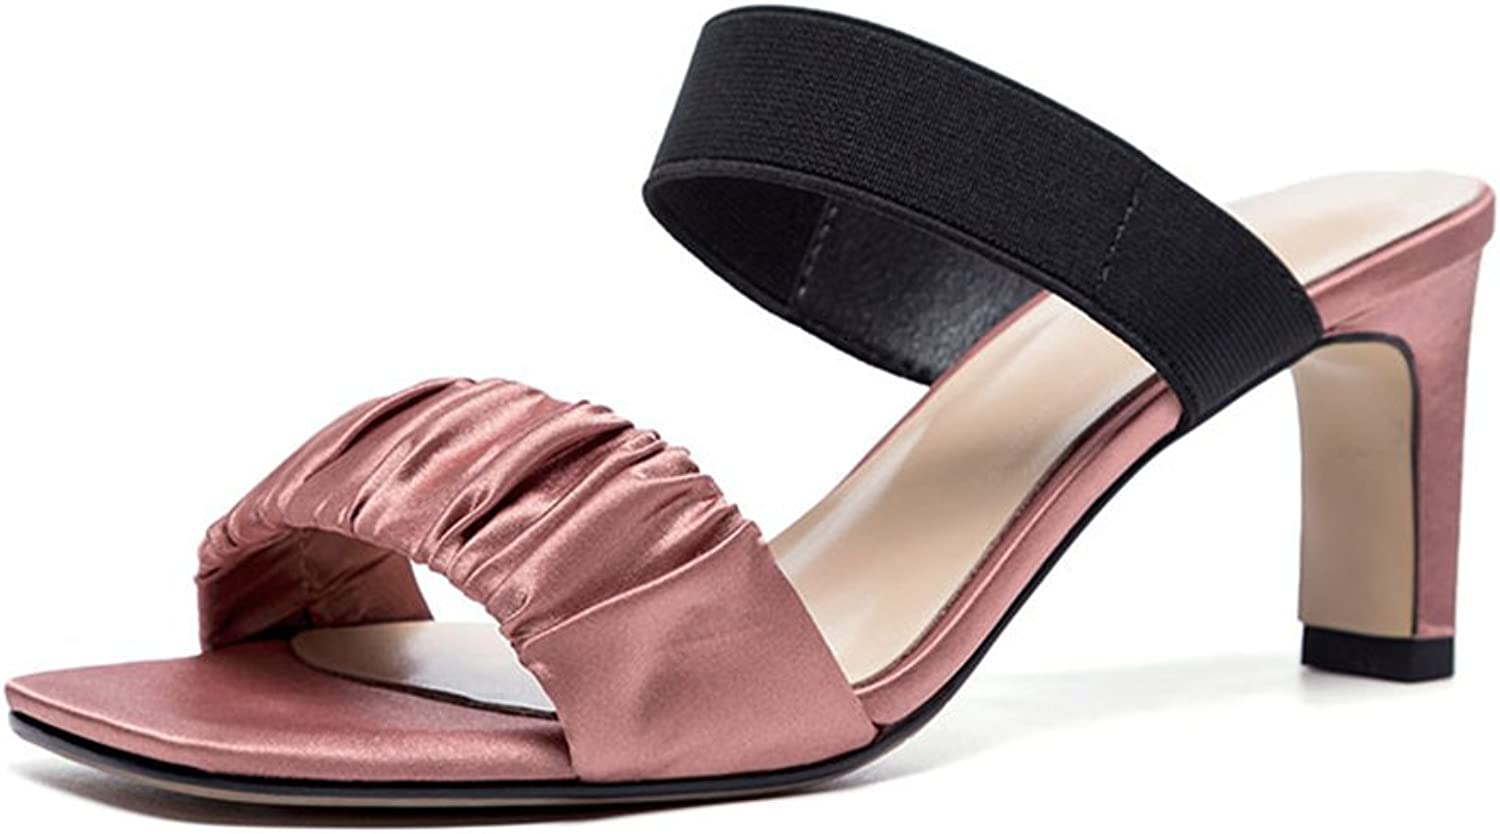 Women's shoes 2018 Fashion shoes Summer New Sandals Slipper Rough Heel for Casual Dress Party & Evening